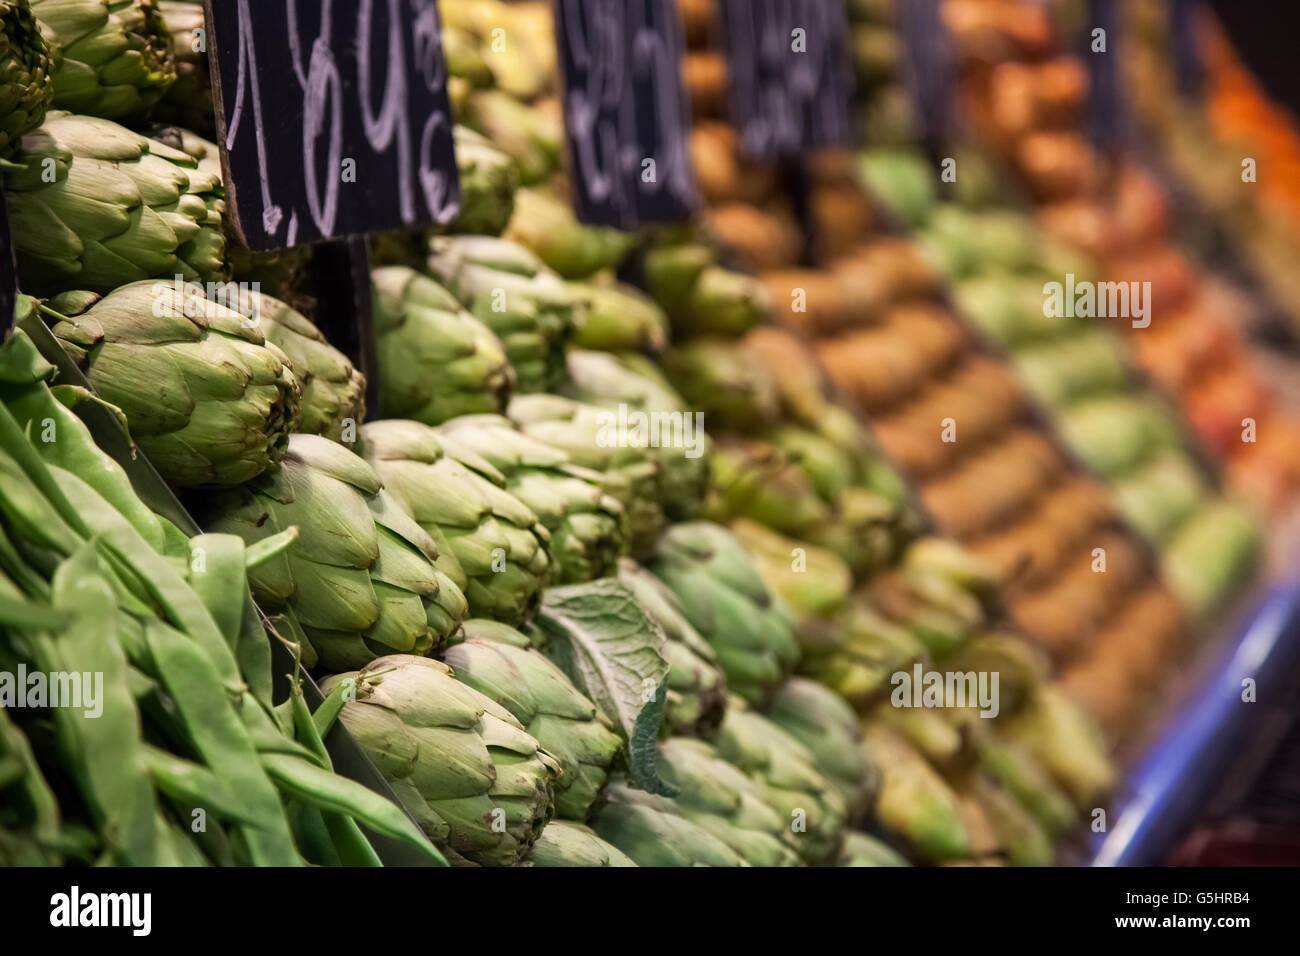 Fruits and vegetables stall in La Boqueria, the most famous market in Barcelona. Stock Photo